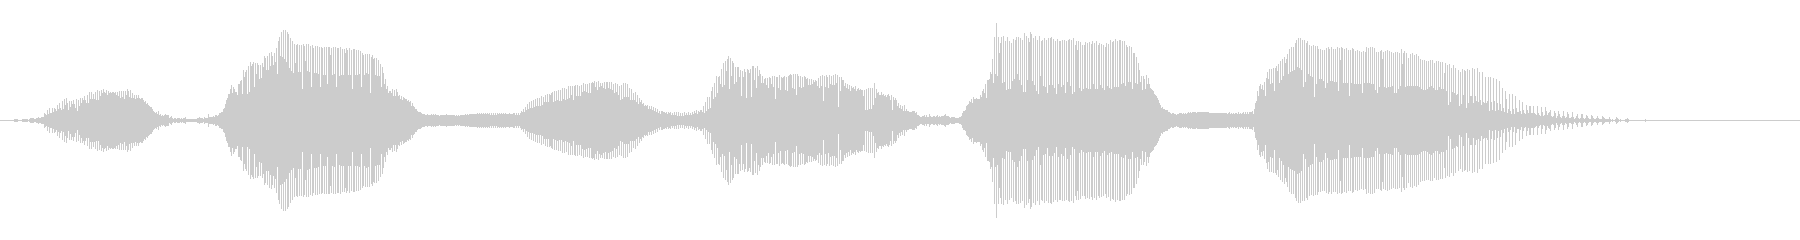 """""""2023"""" 6 year old girl's unreproduced waveform"""